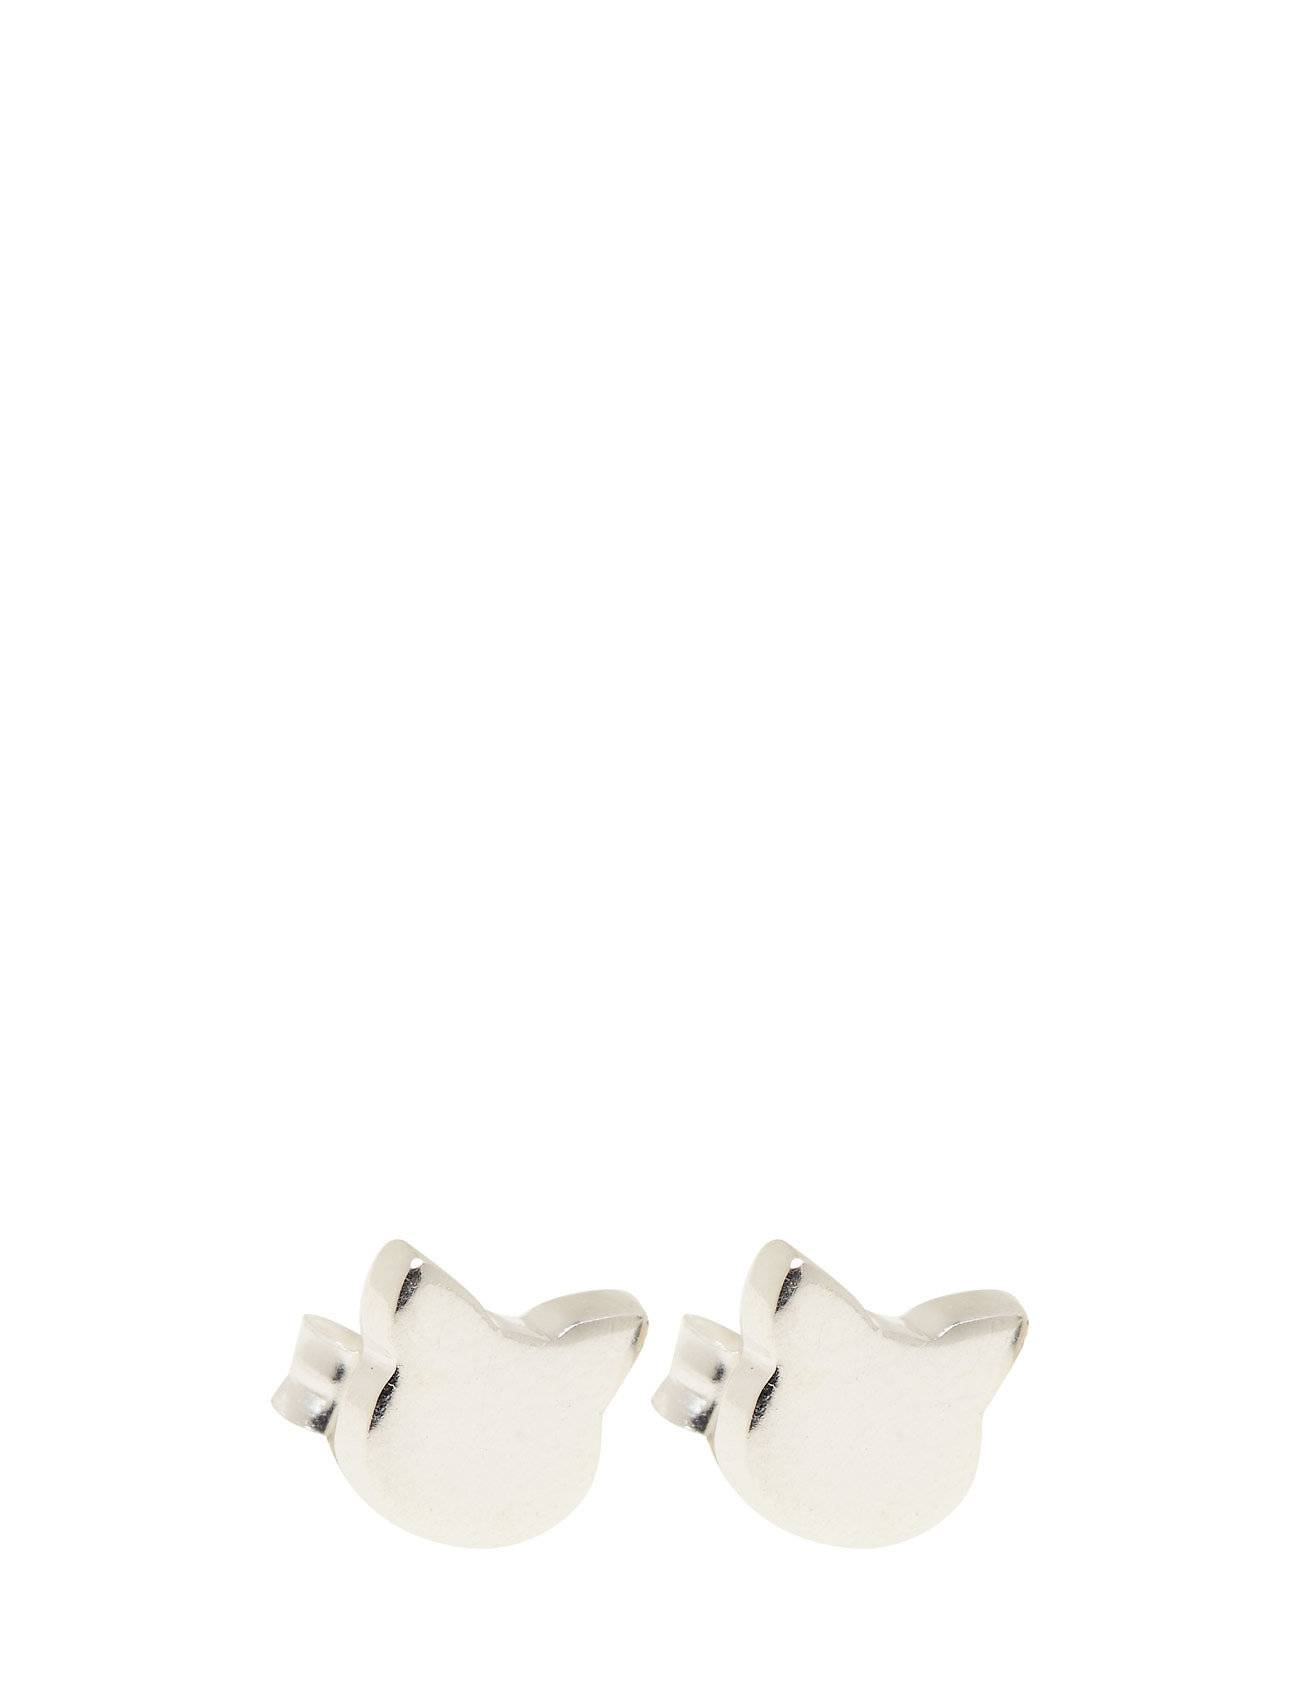 Syster P Sparkle Missy Earrings